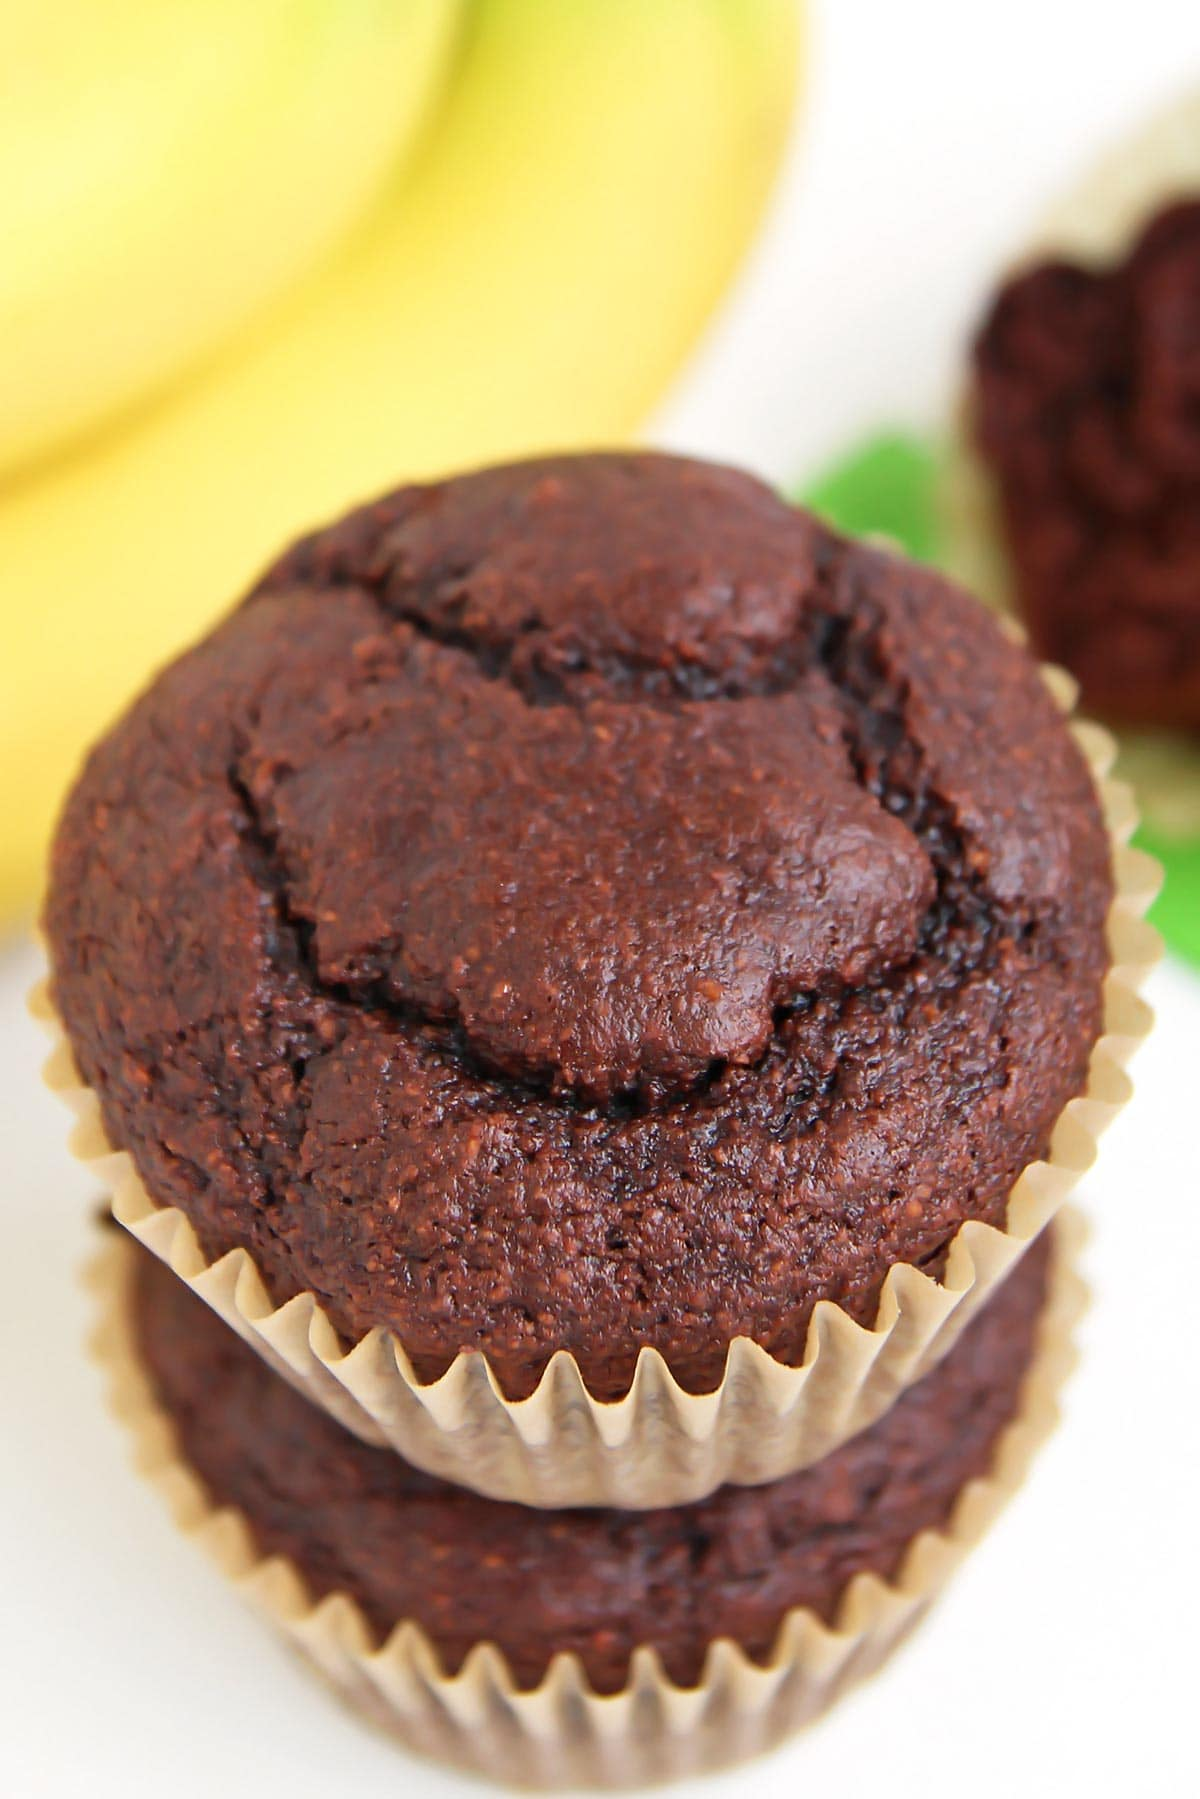 Coconut Flour Banana Chocolate Muffins stacked